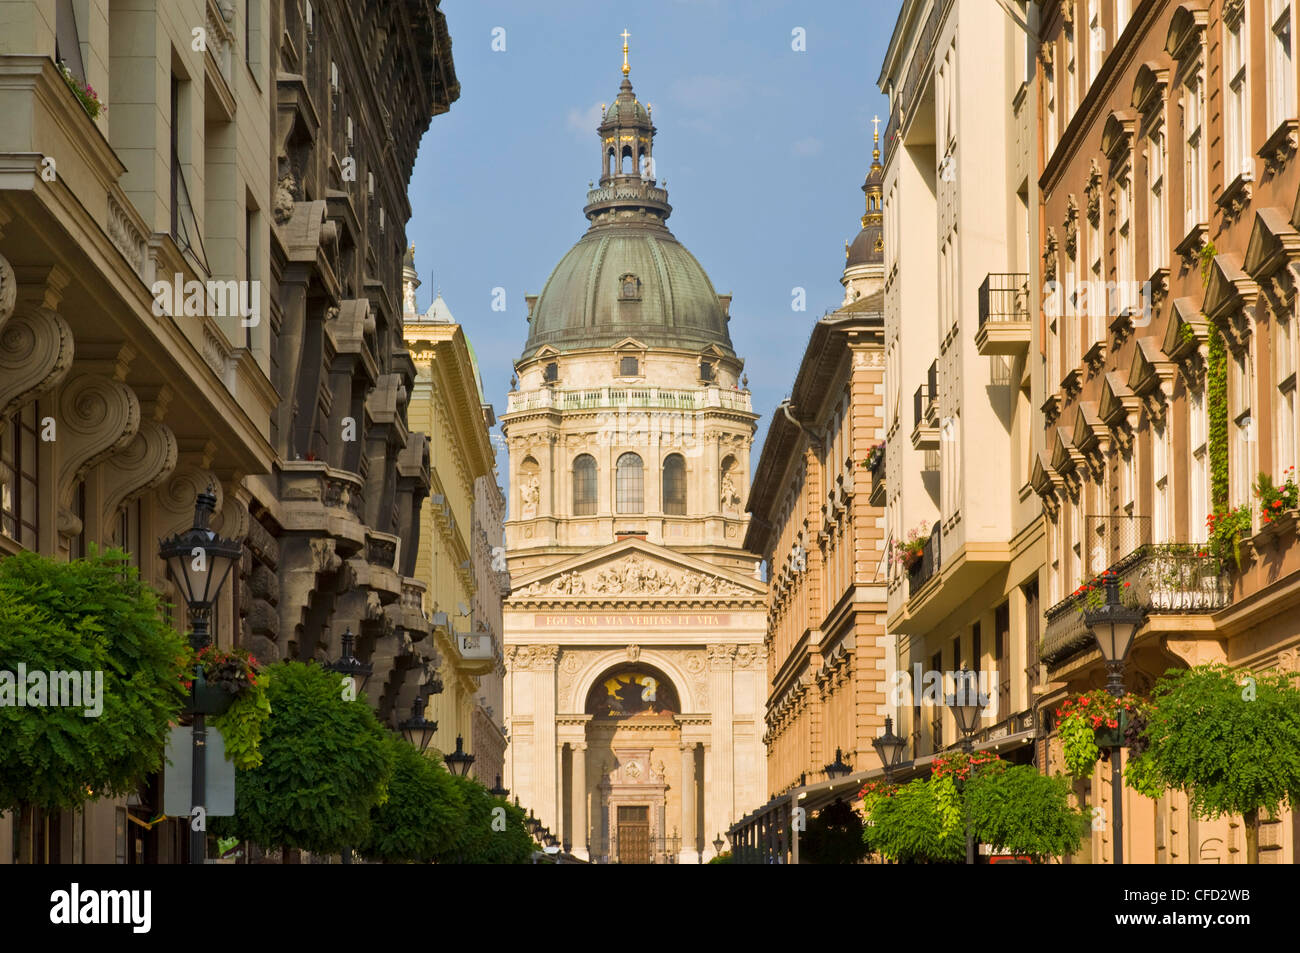 The neo-renaissance dome of St. Stephen's Basilica, shops and buildings of the Zrinyi Utca, central Budapest, - Stock Image